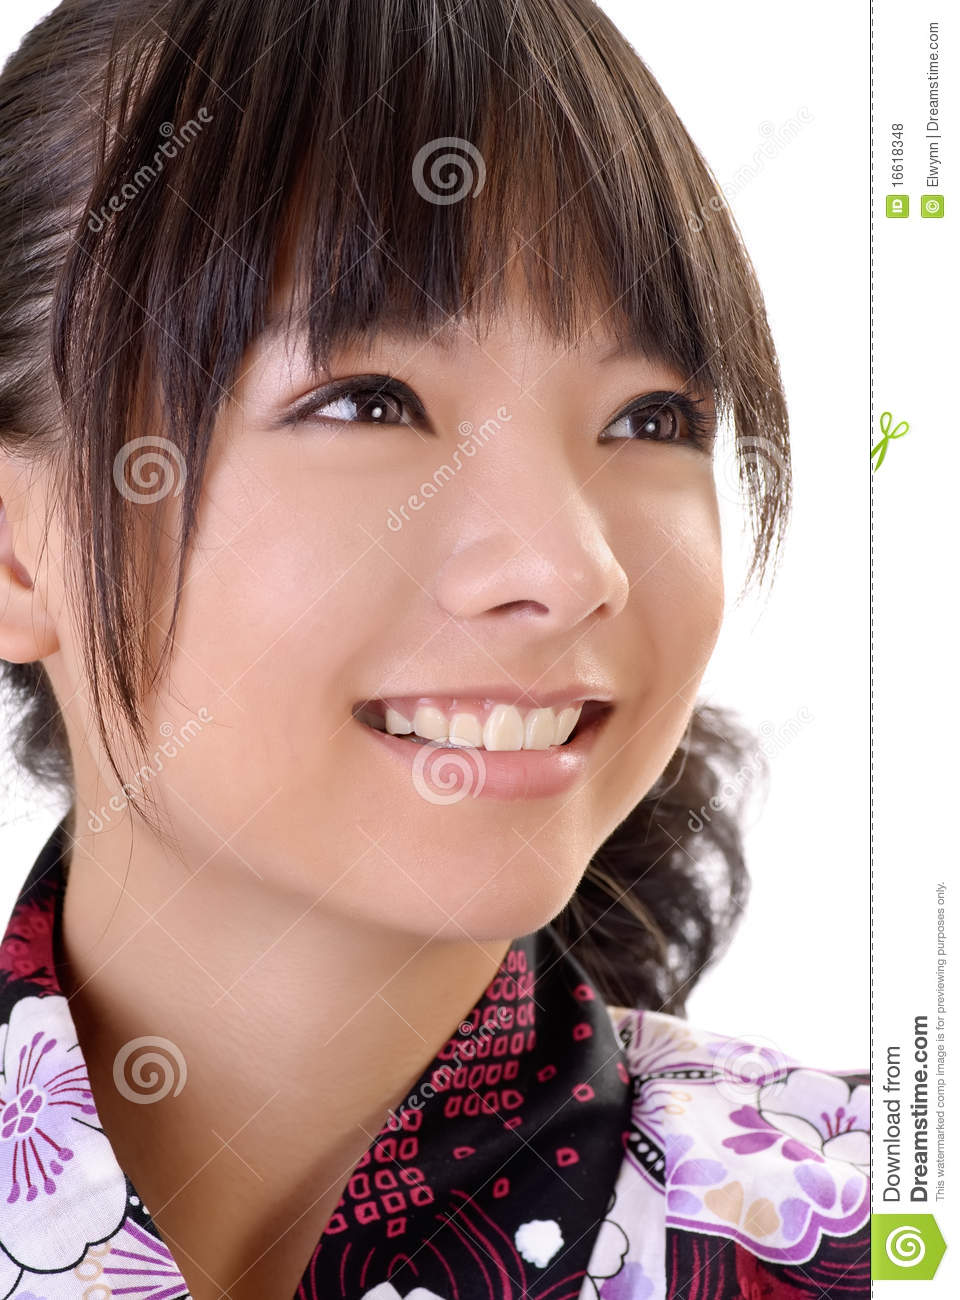 Smiling Japanese Girl Royalty Free Stock Photos Image